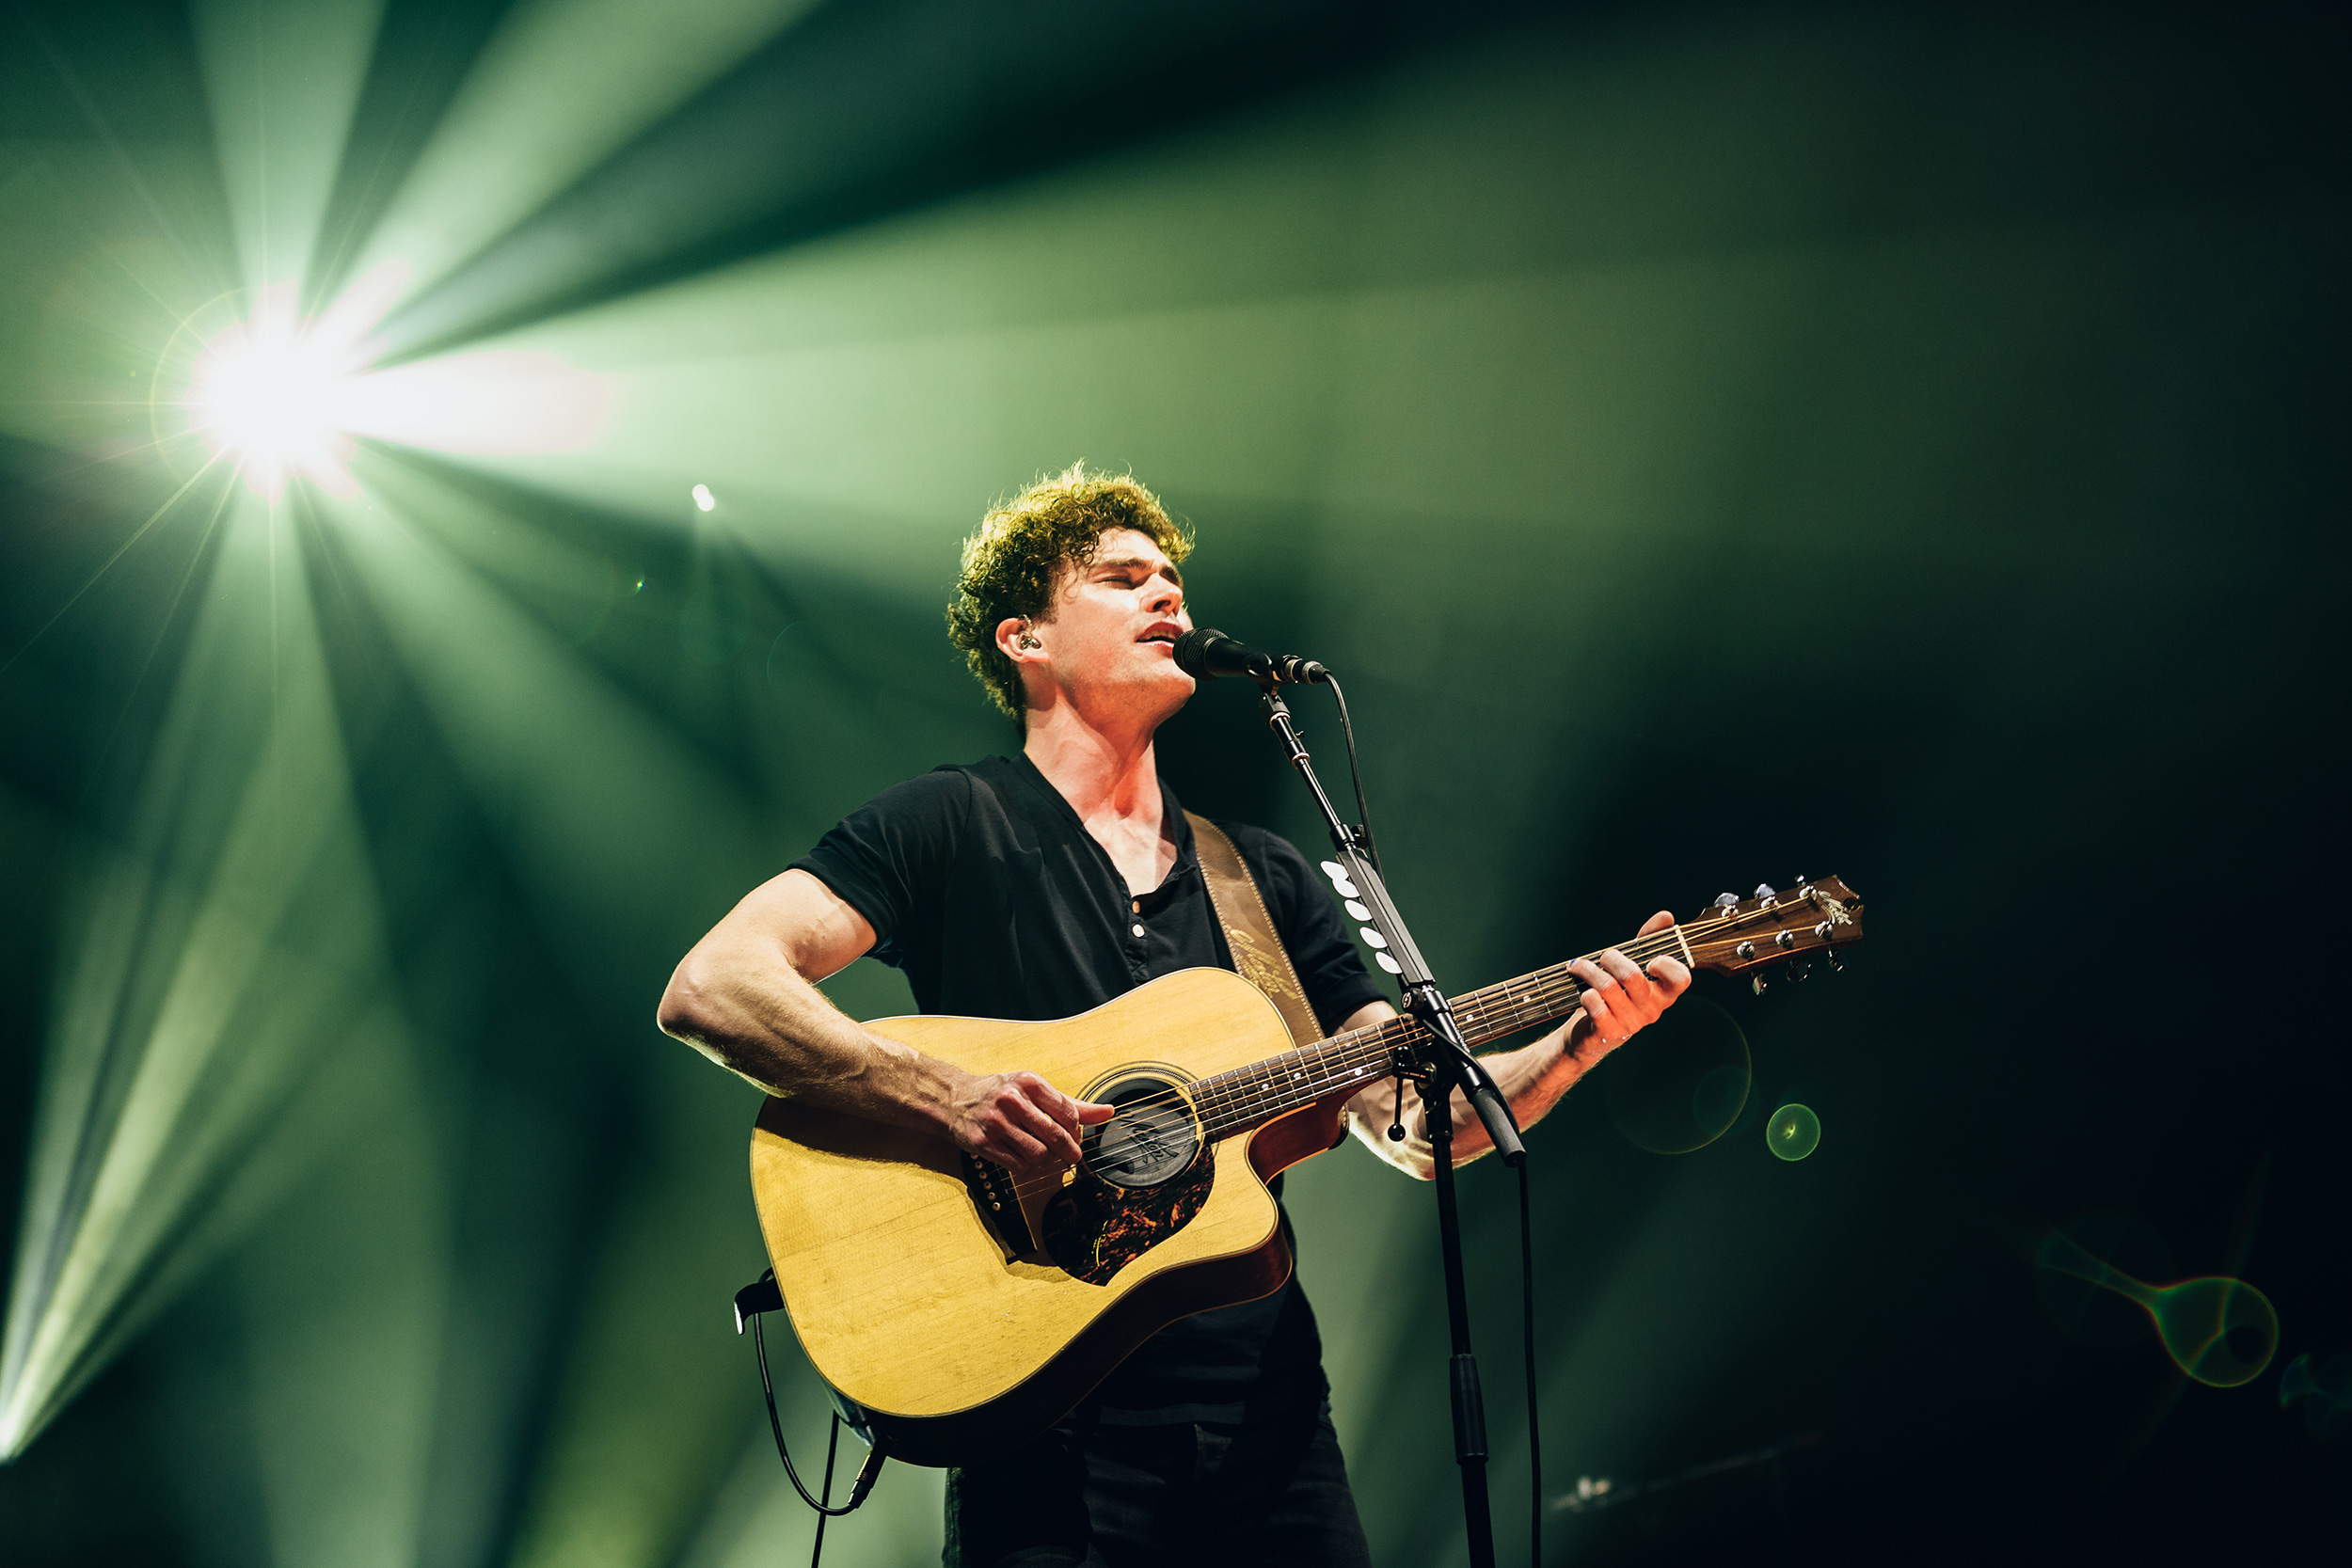 Vance_Joy_131118_Communion-(35-of-64).jpg